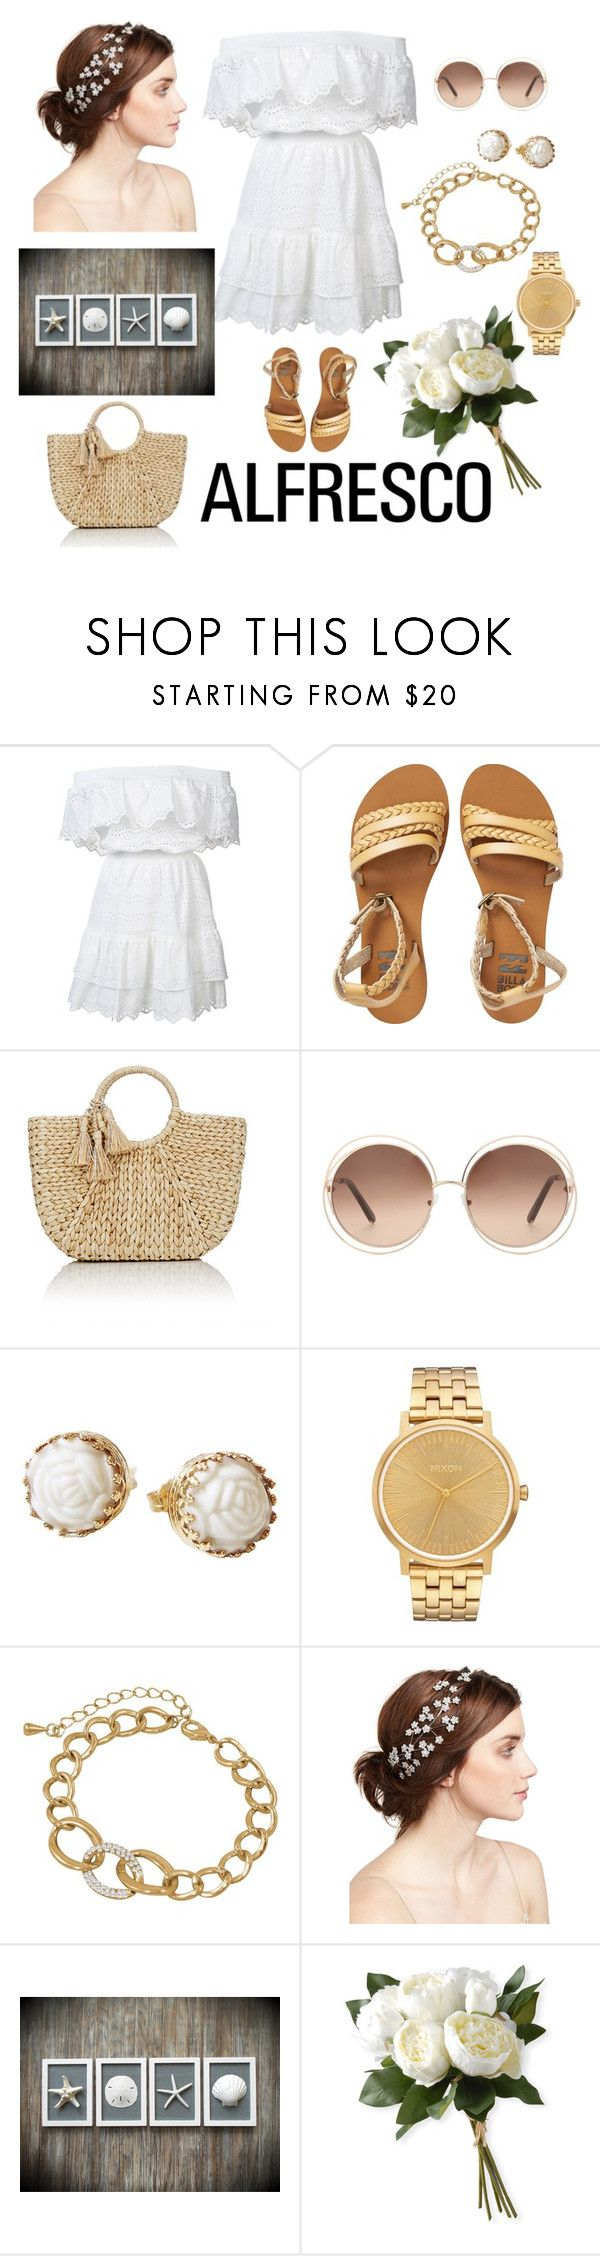 """breezy ❤"" by gayumihansi ❤ liked on Polyvore featuring LoveShackFancy, Billabong, Buji Baja, Chloé, Poporcelain, Nixon, Jennifer Behr and National Tree Company"